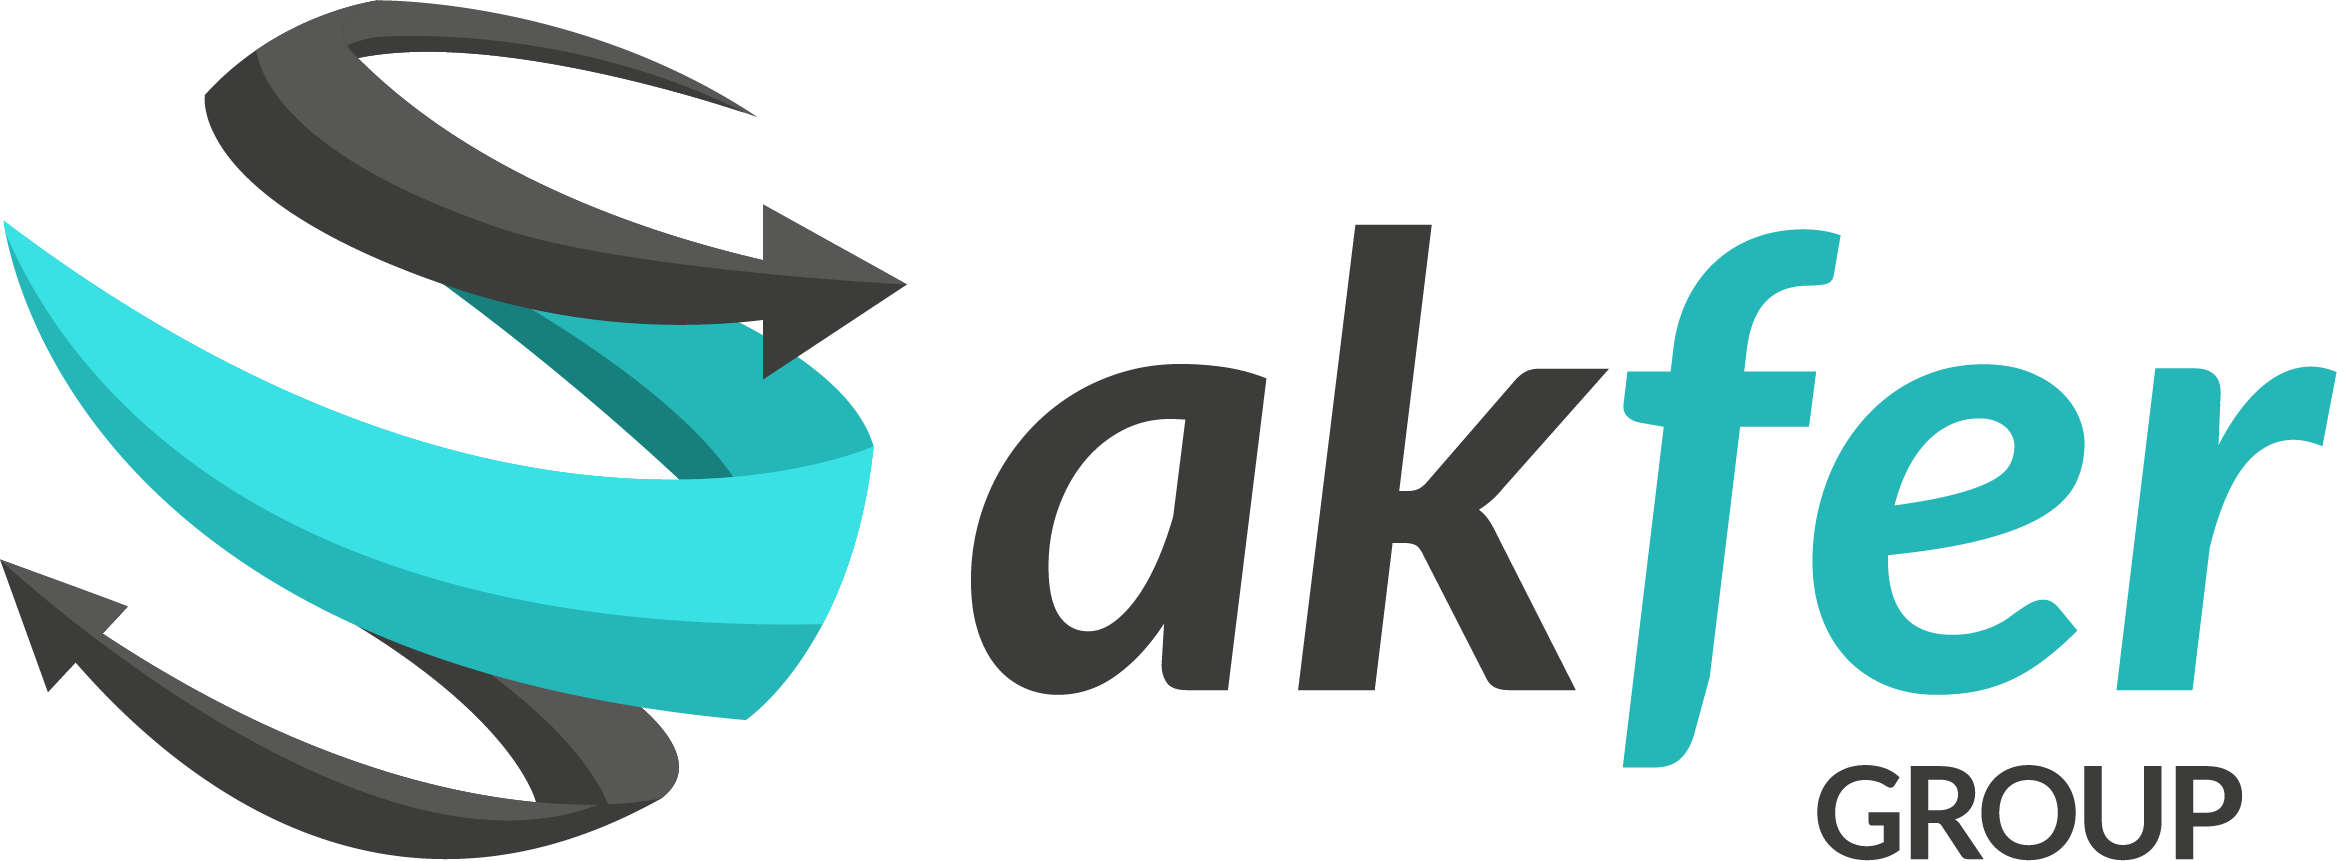 Akfer Group